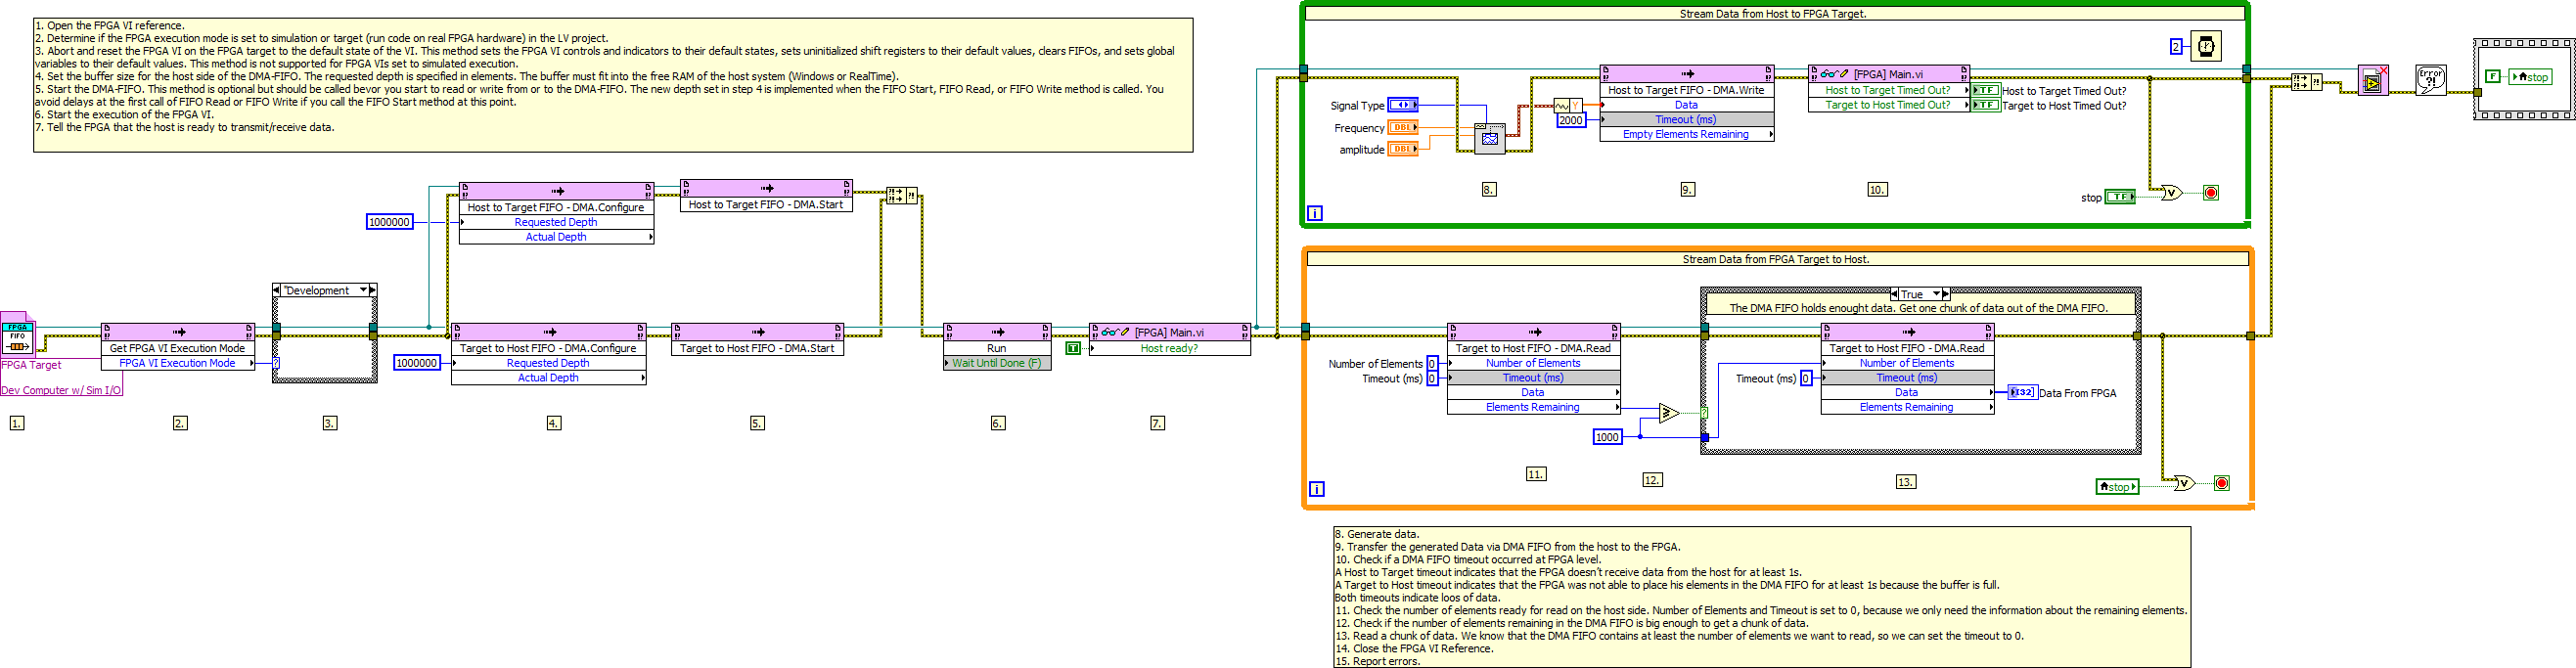 Transferring data between devices or structures using fifos (fpga.